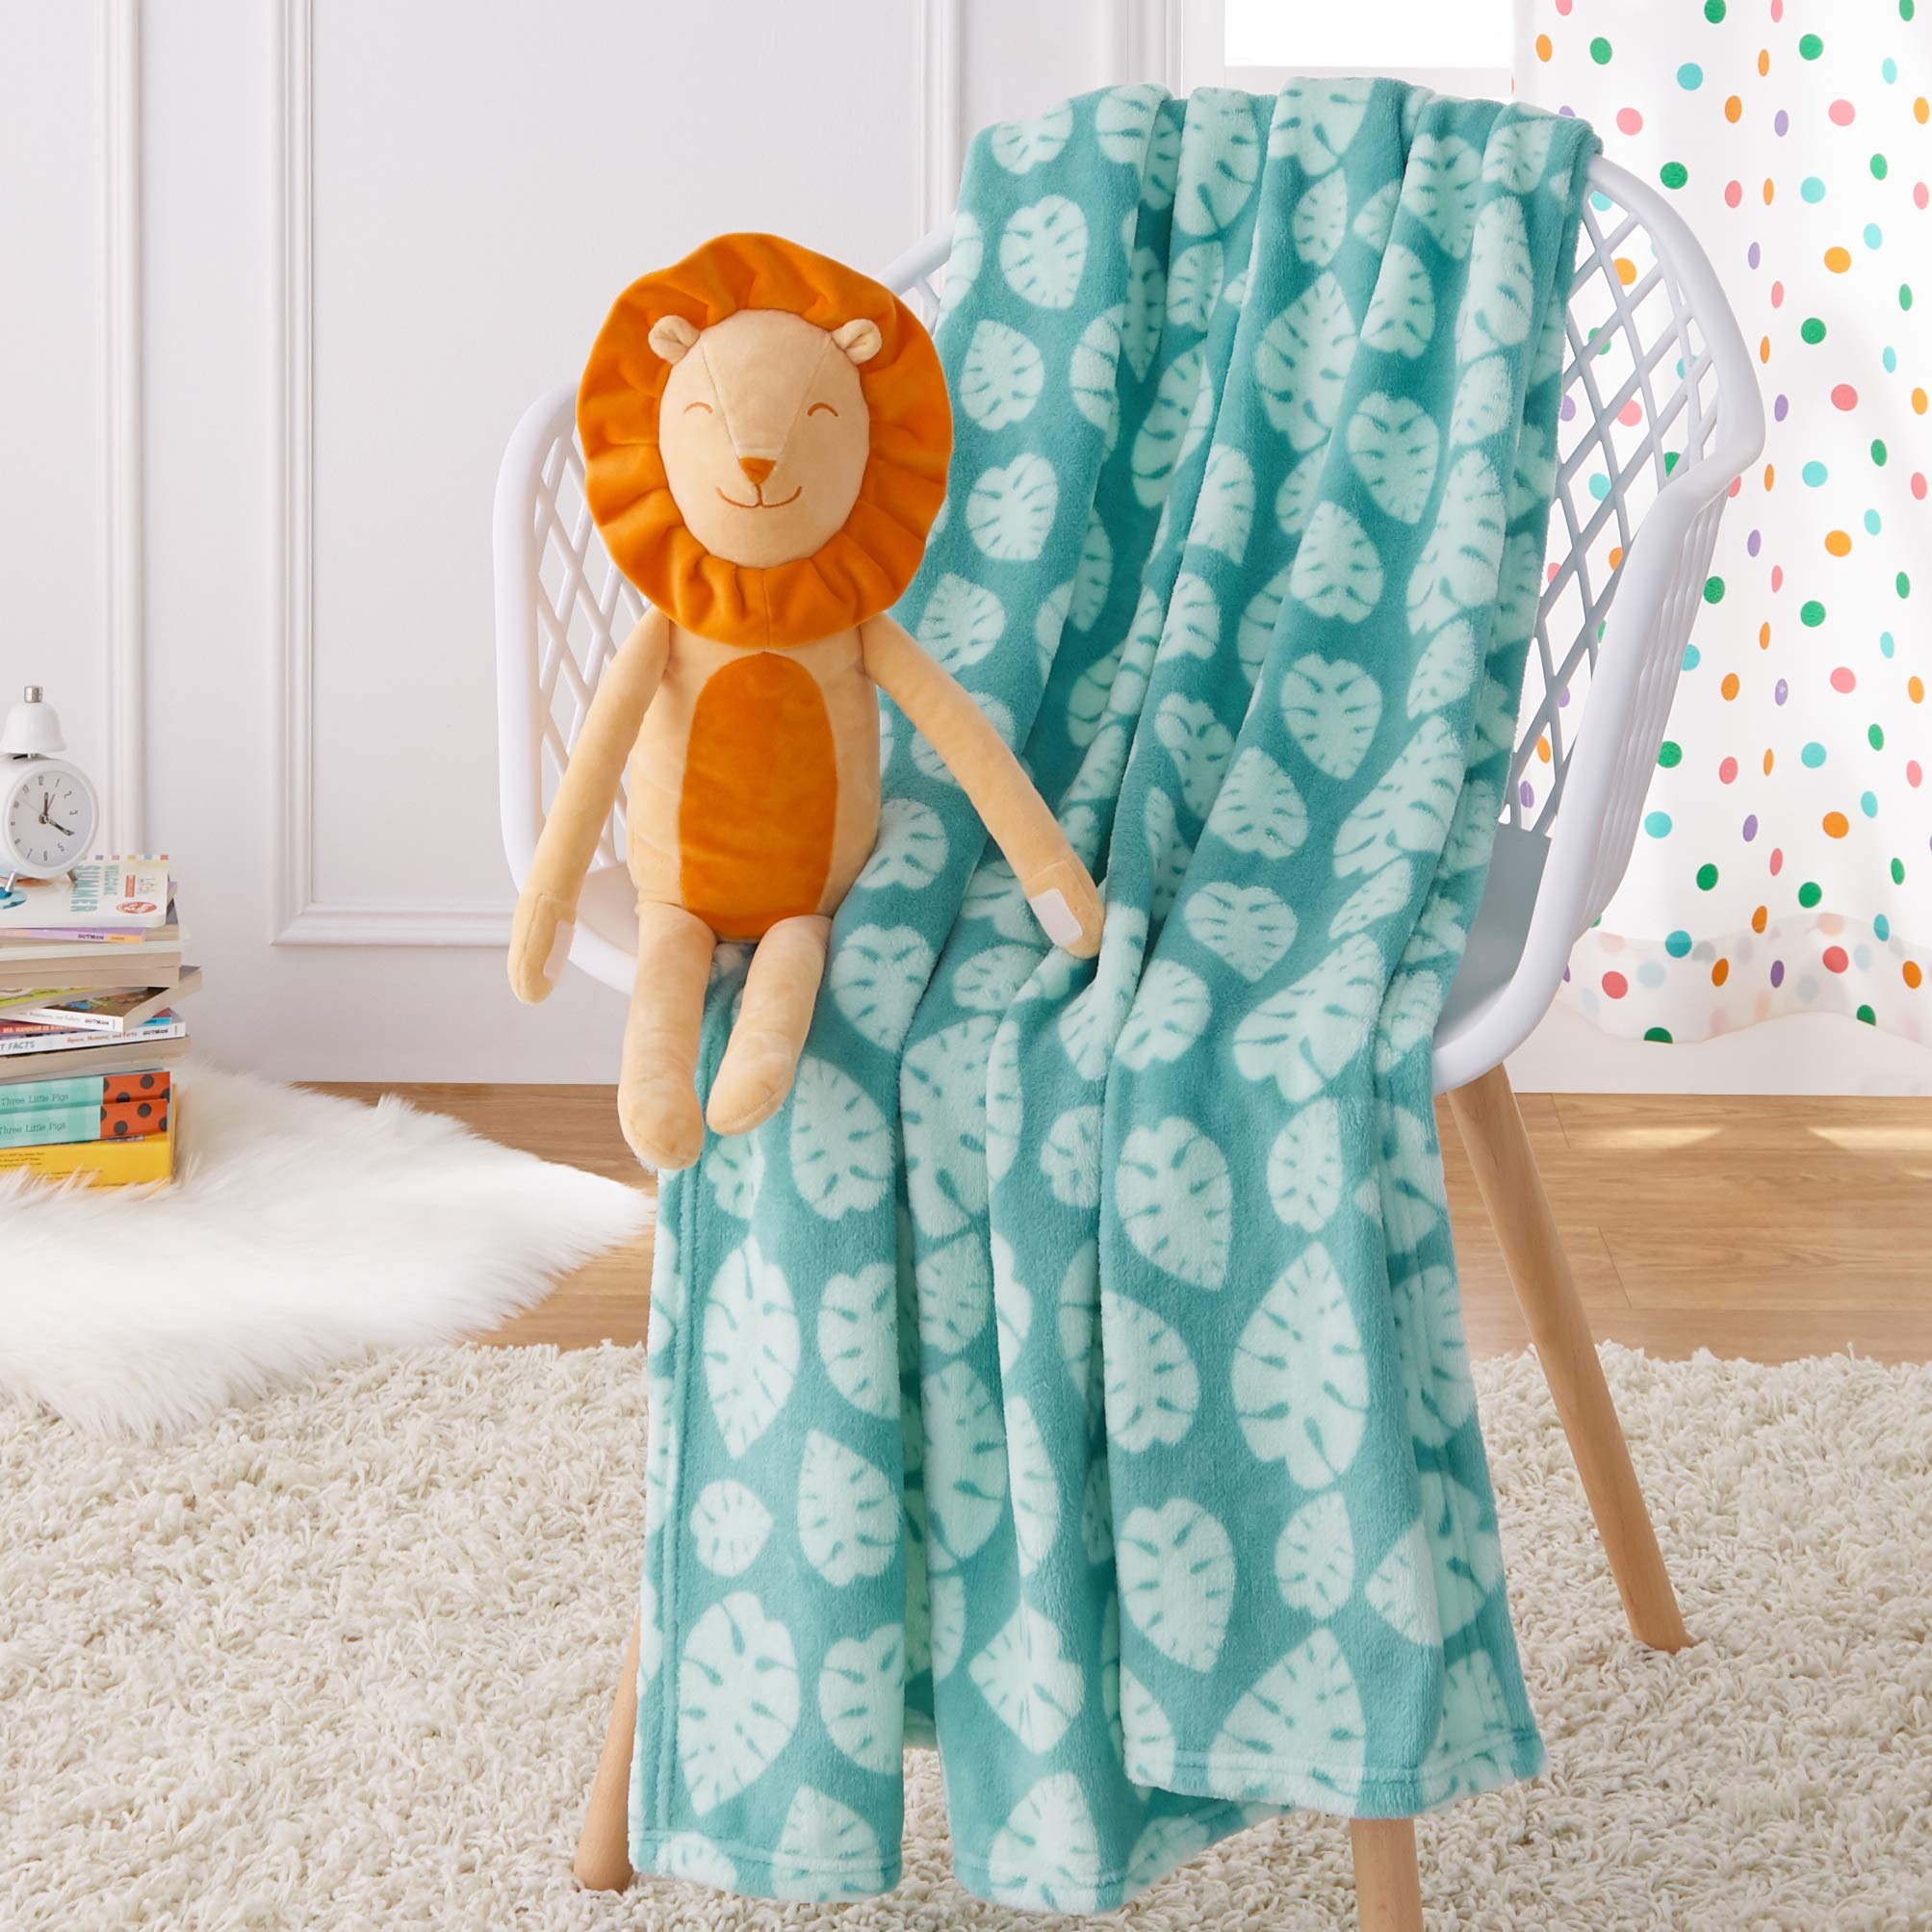 Amazon Basics Kids Laughing Lions Patterned Throw Blanket with Stuffed Animal Lion